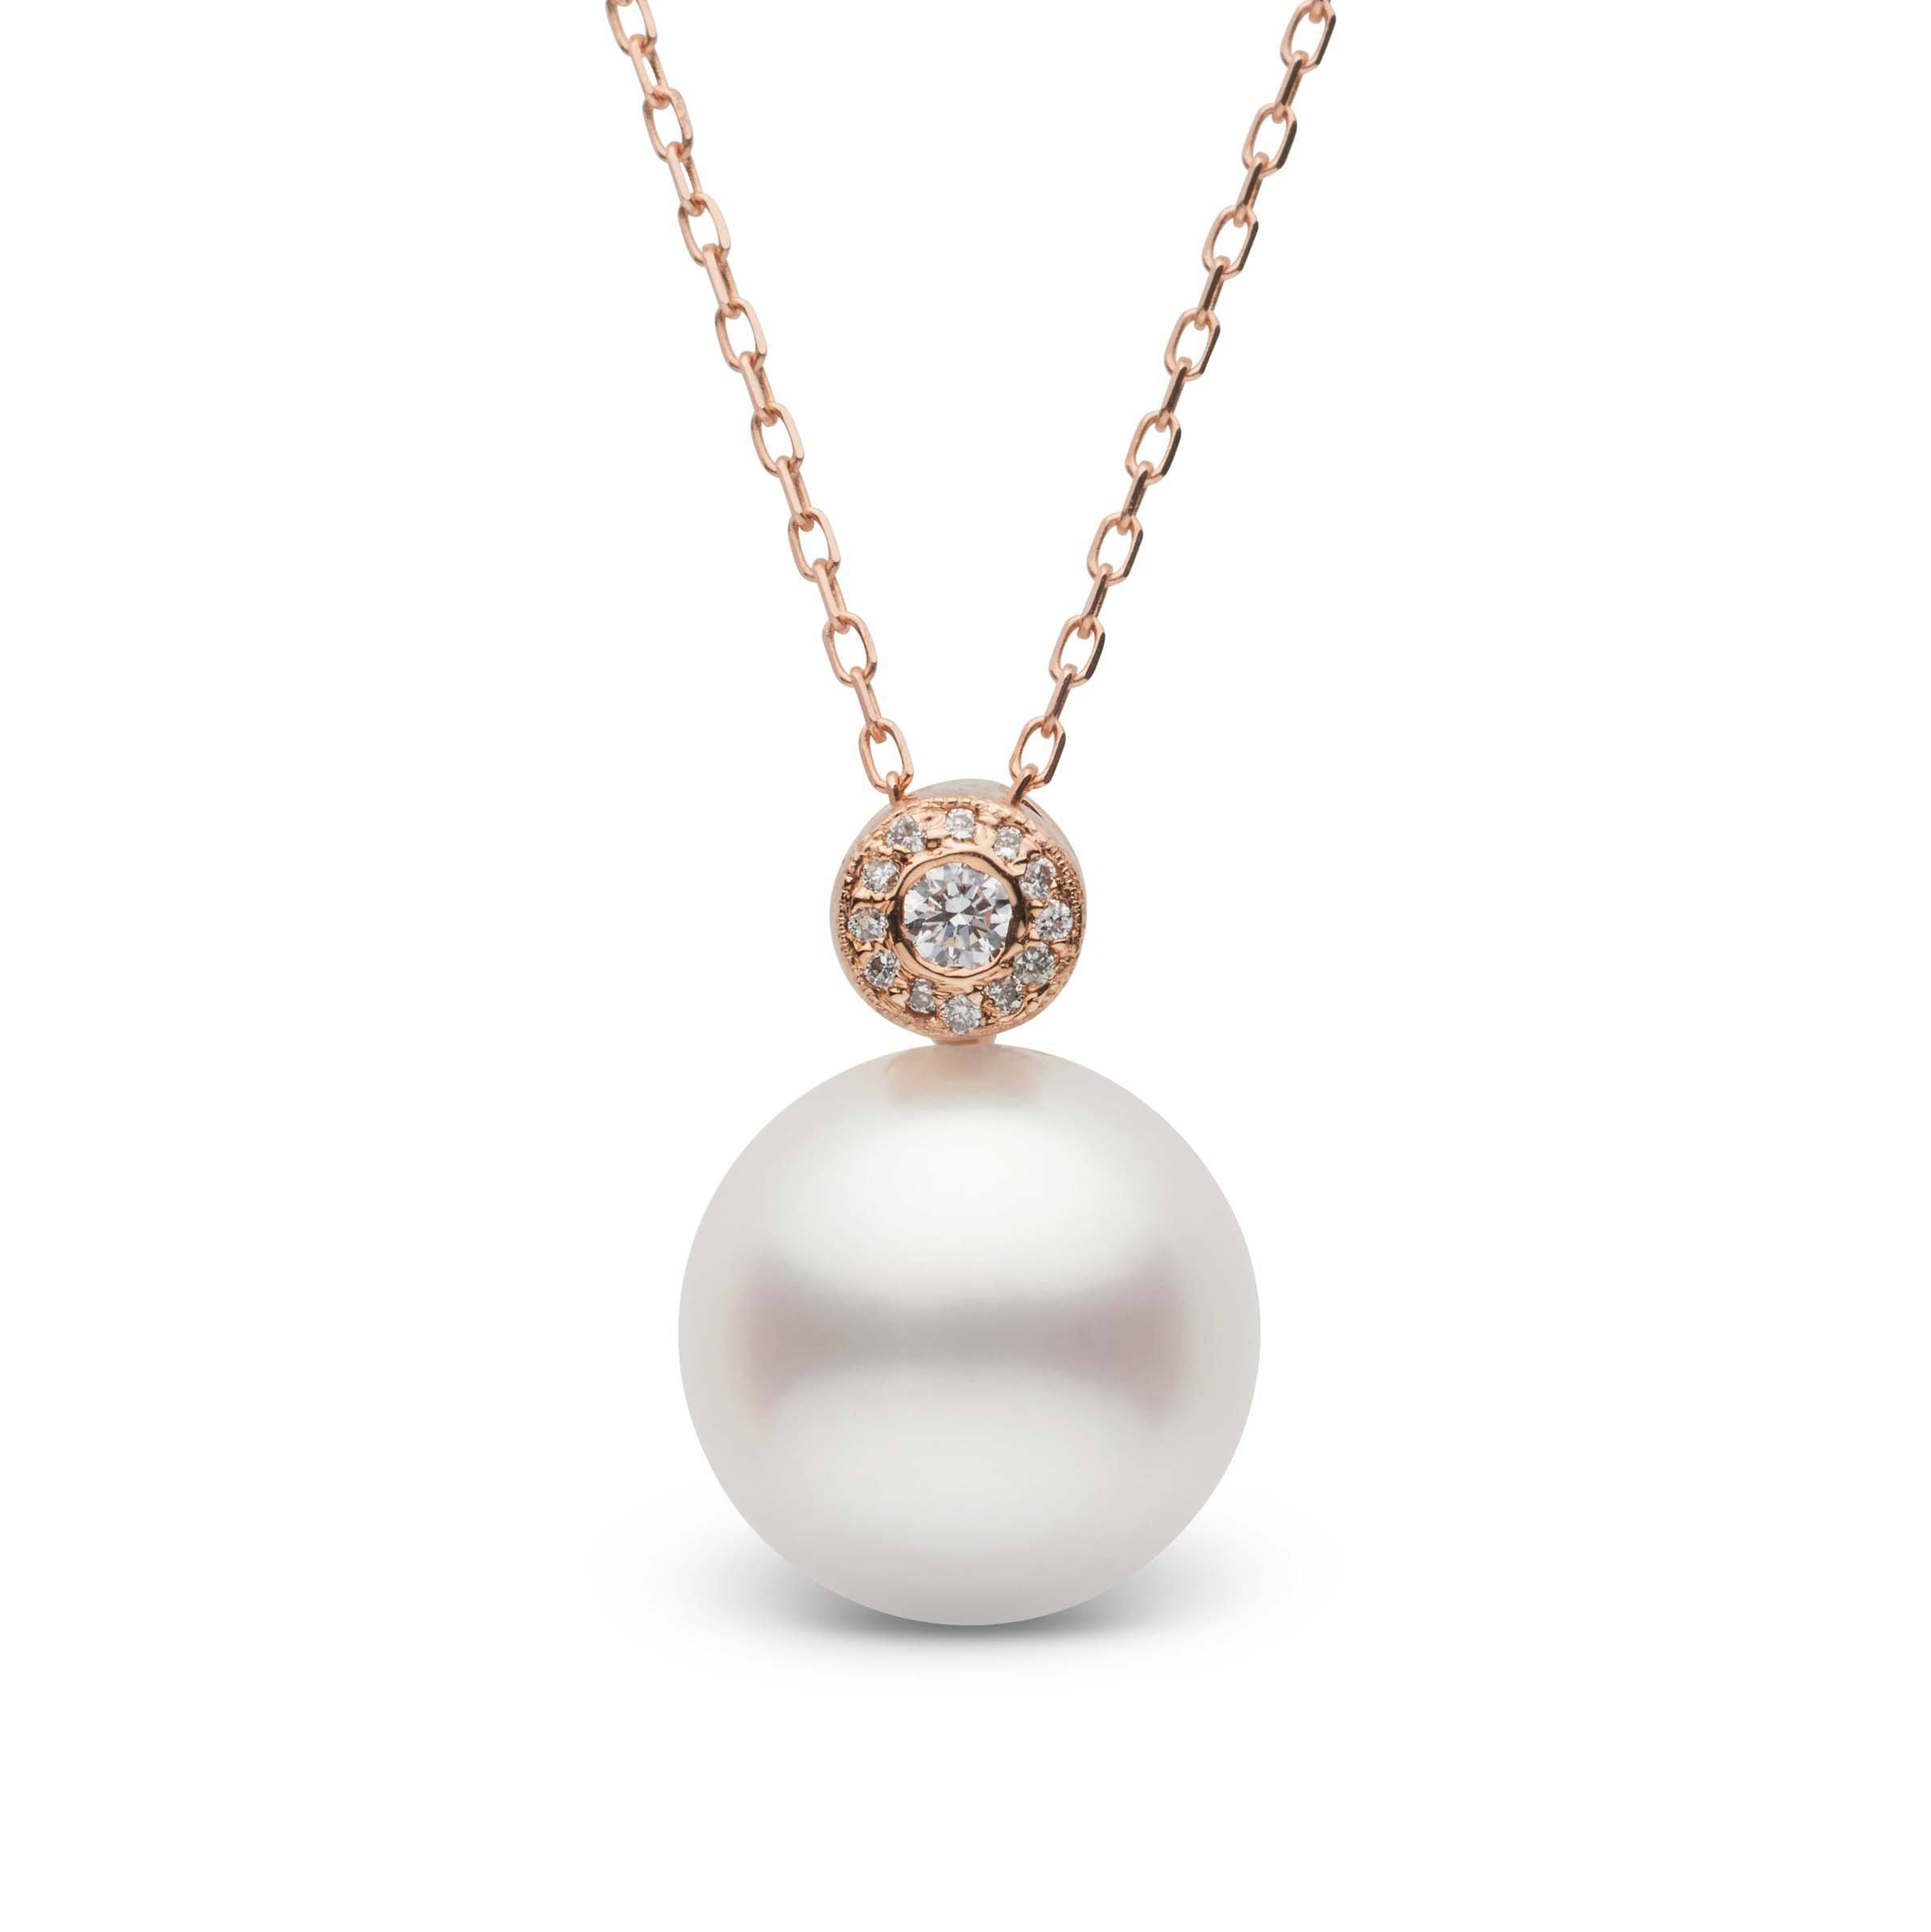 Aura Collection White 11.0-12.0 mm South Sea Pearl and Diamond Pendant